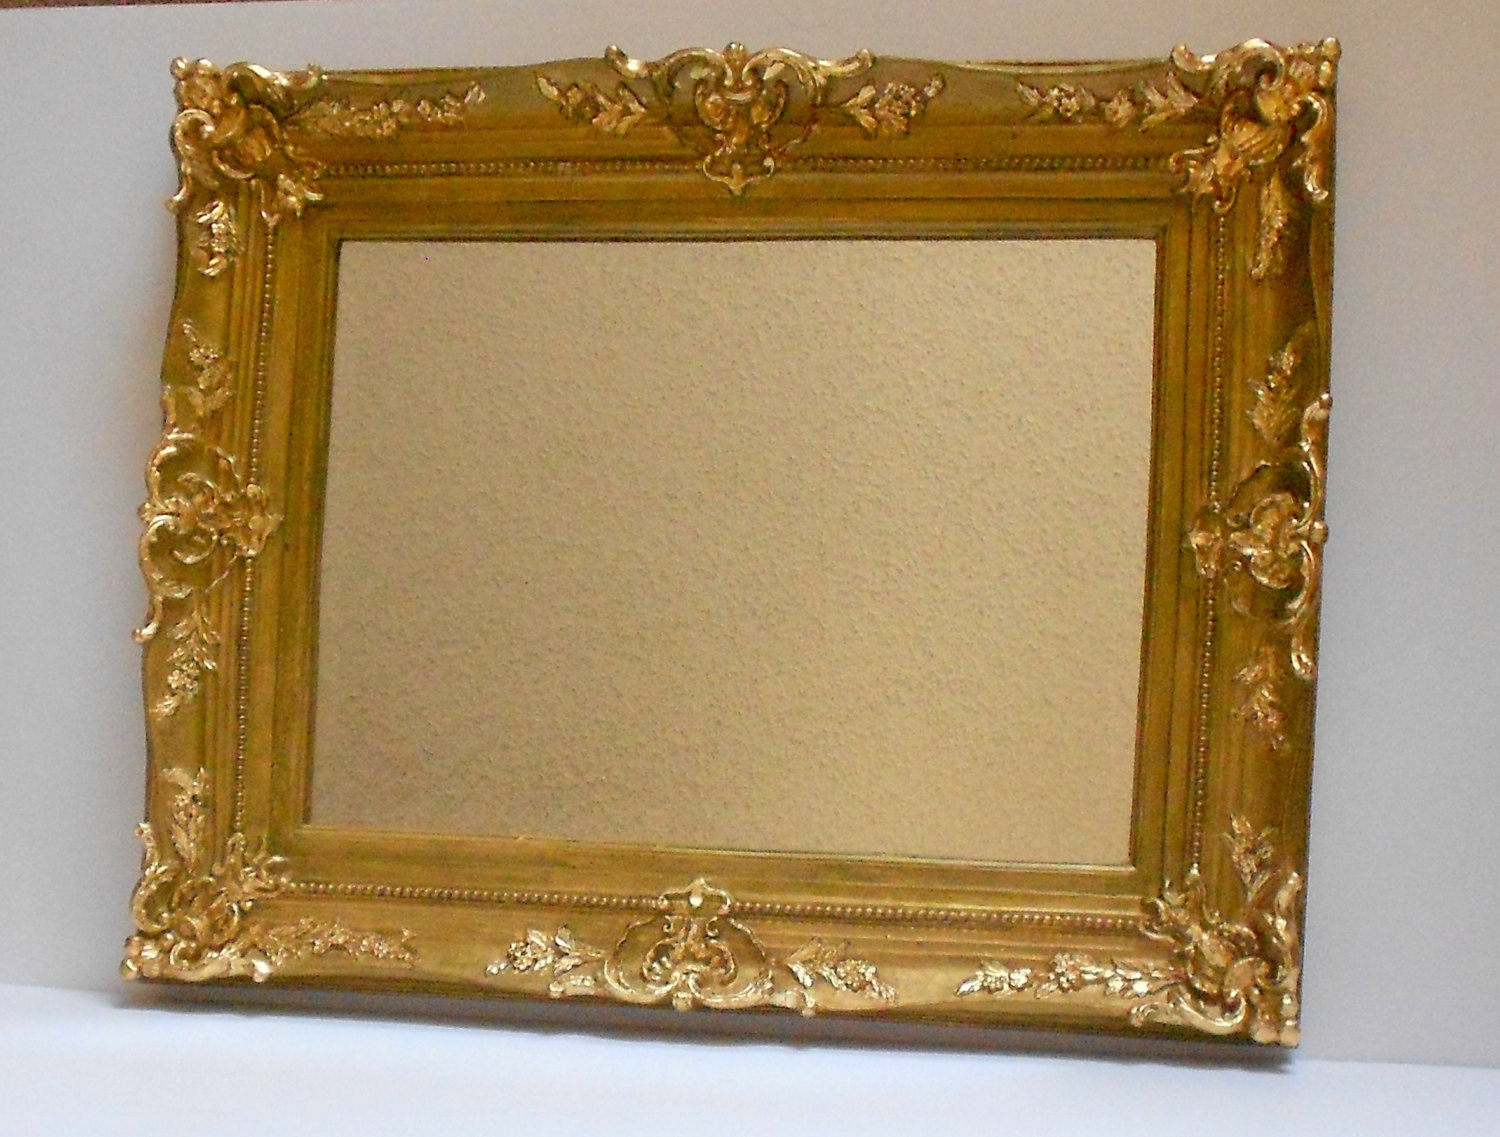 11×15 Mirror Vintage Mirror Decorative Mirror Wall Mirror Regarding Baroque Mirrors (Image 1 of 15)